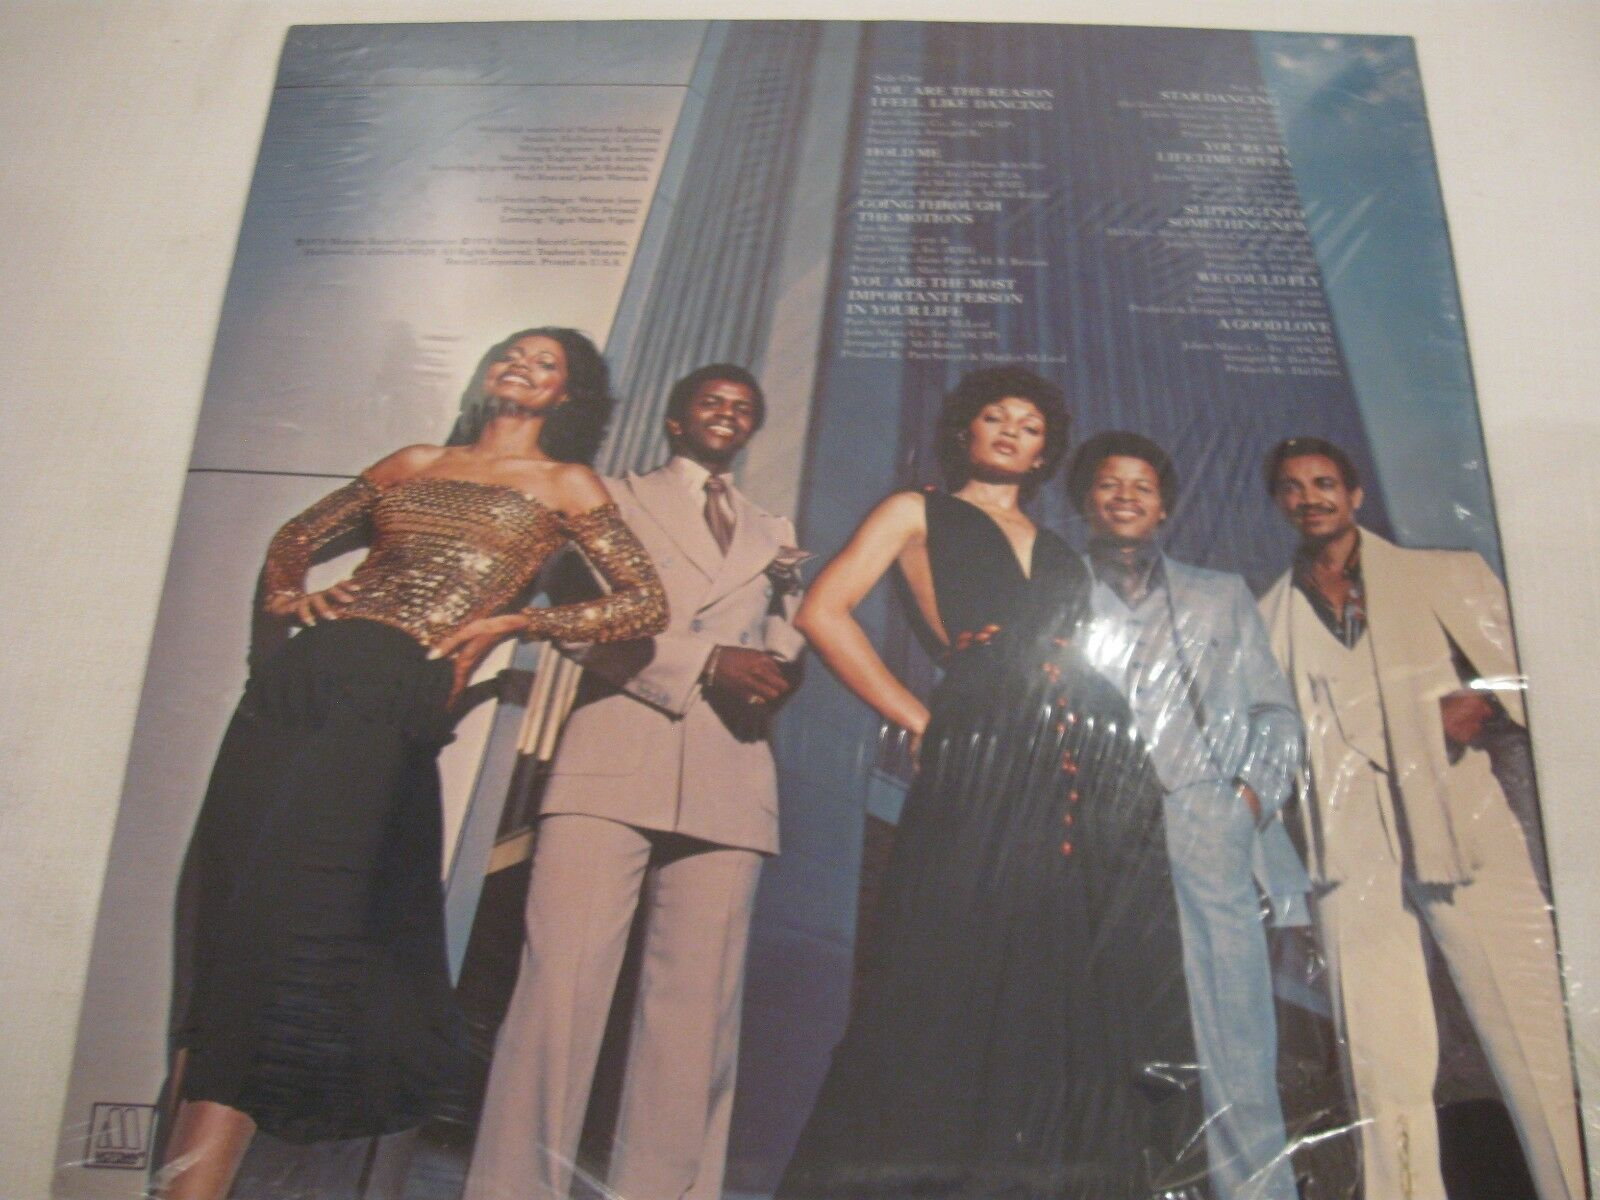 The Fifth Dimension Star Dancing Motown M7-896R Stereo Vinyl Record LP SEALED image 2